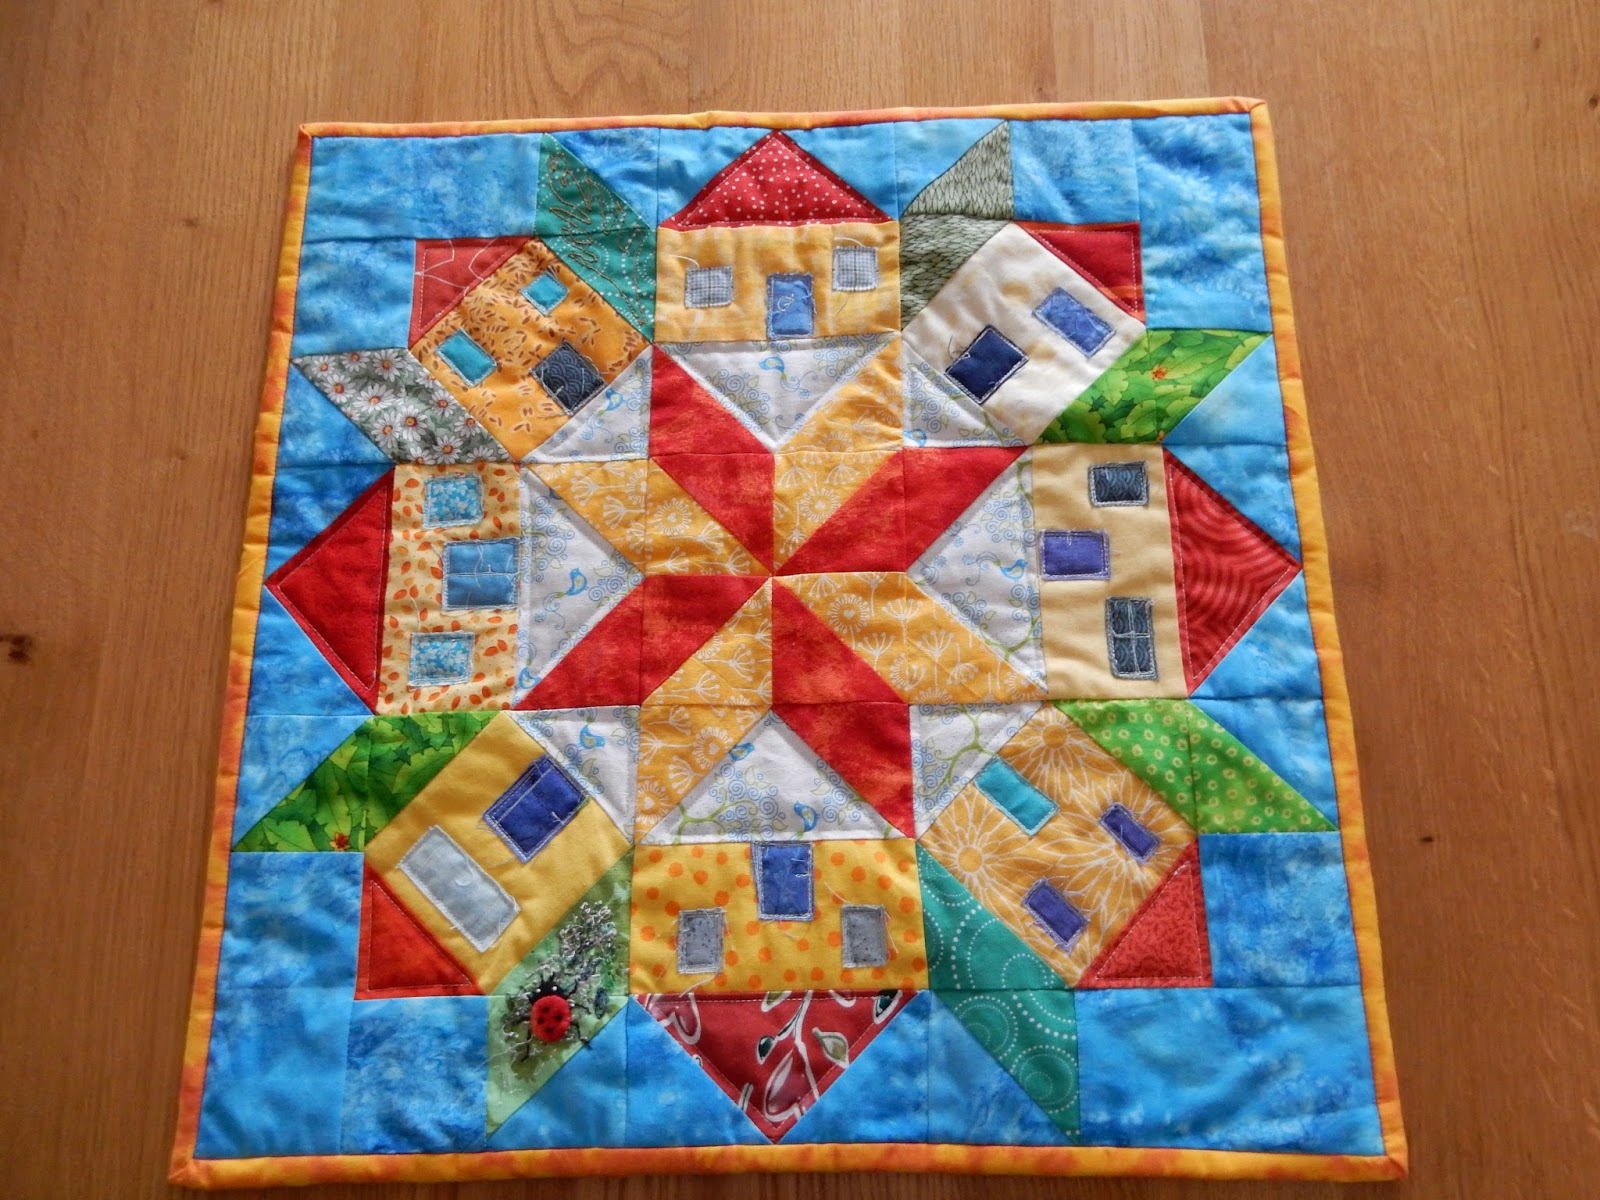 Artikel: quiltsde - quilts, patchwork and more